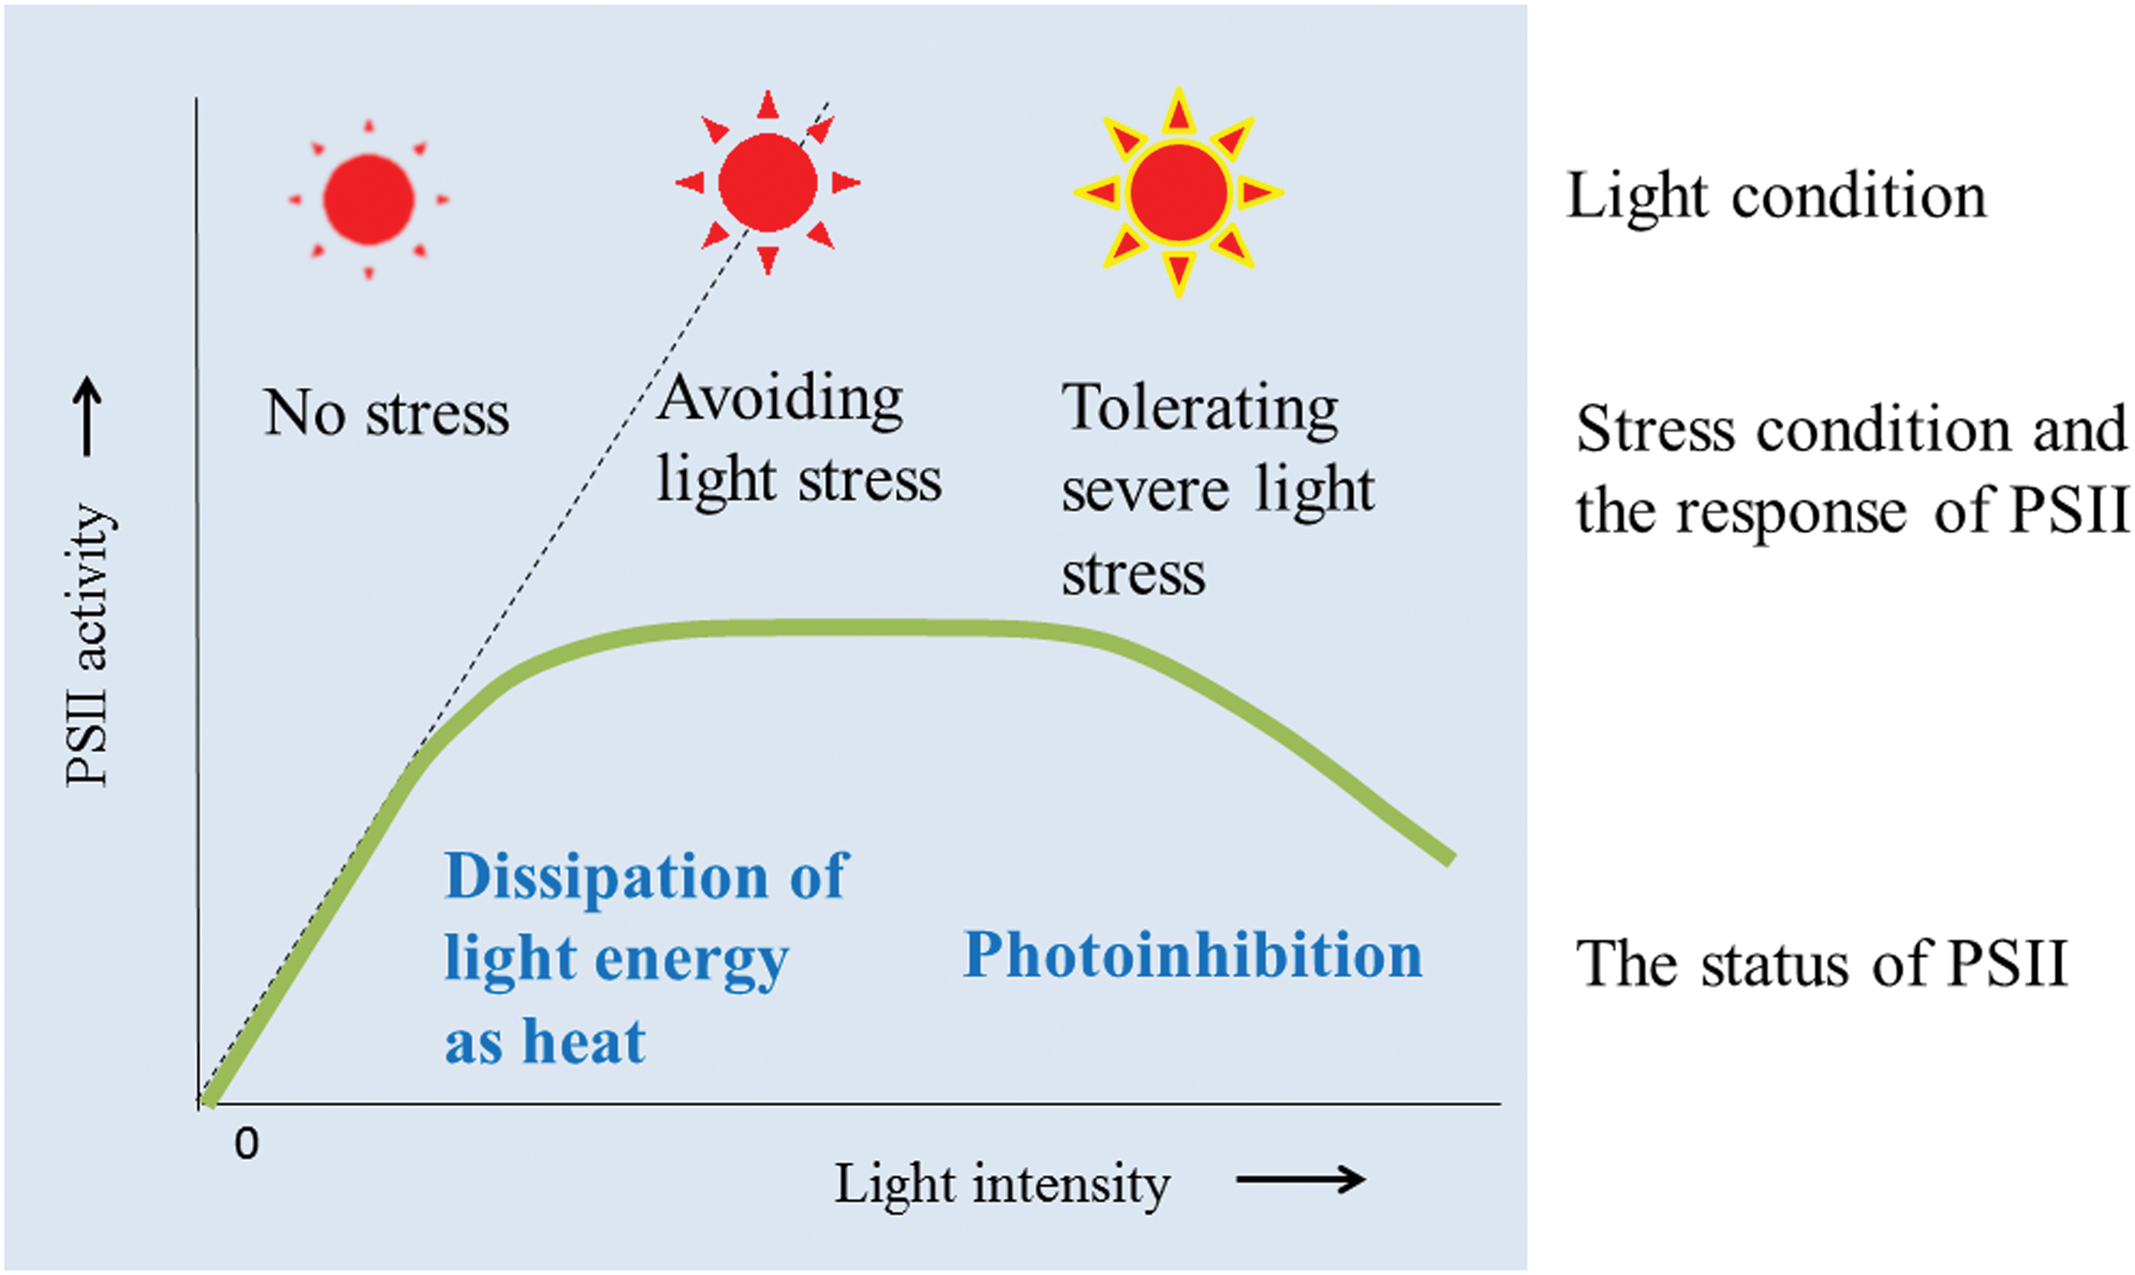 effects of light intensity on the